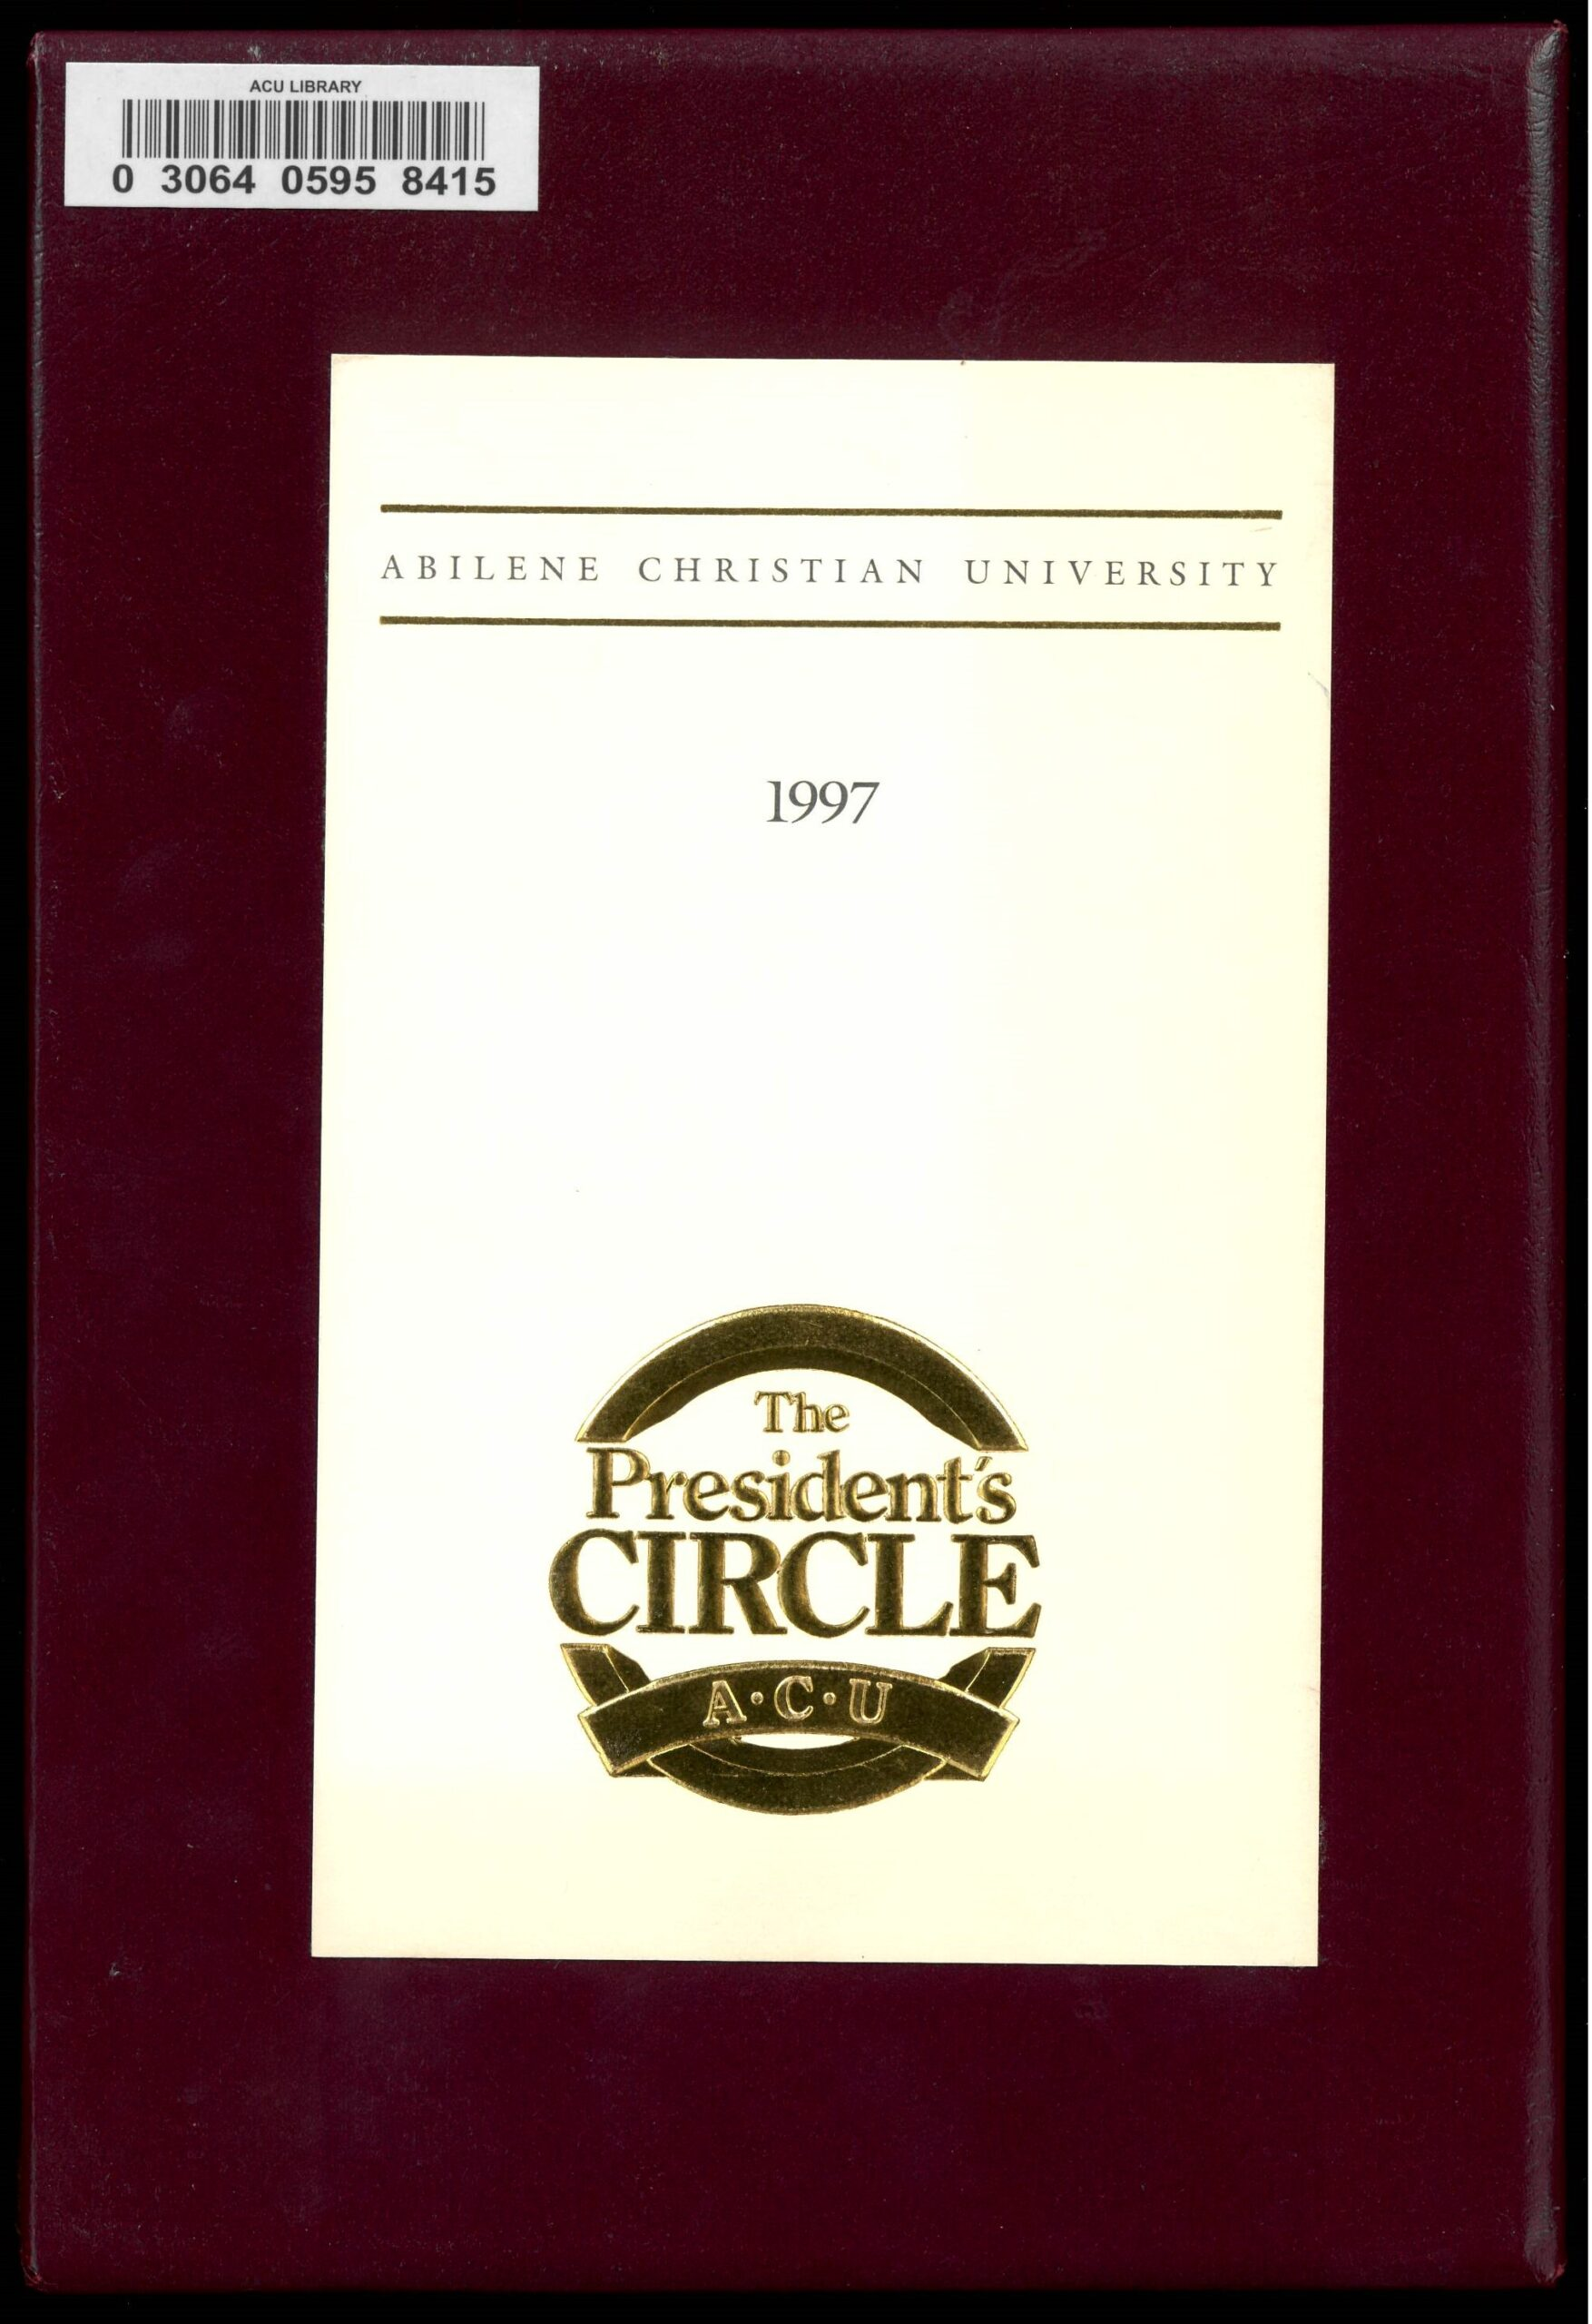 Forrest M. McCann,Hymns and History: An Annotated Survey of Sources. ACU Press: Abilene, 1997. ACU Presidents' Circle Edition with Great Songs of the Church, Revised.